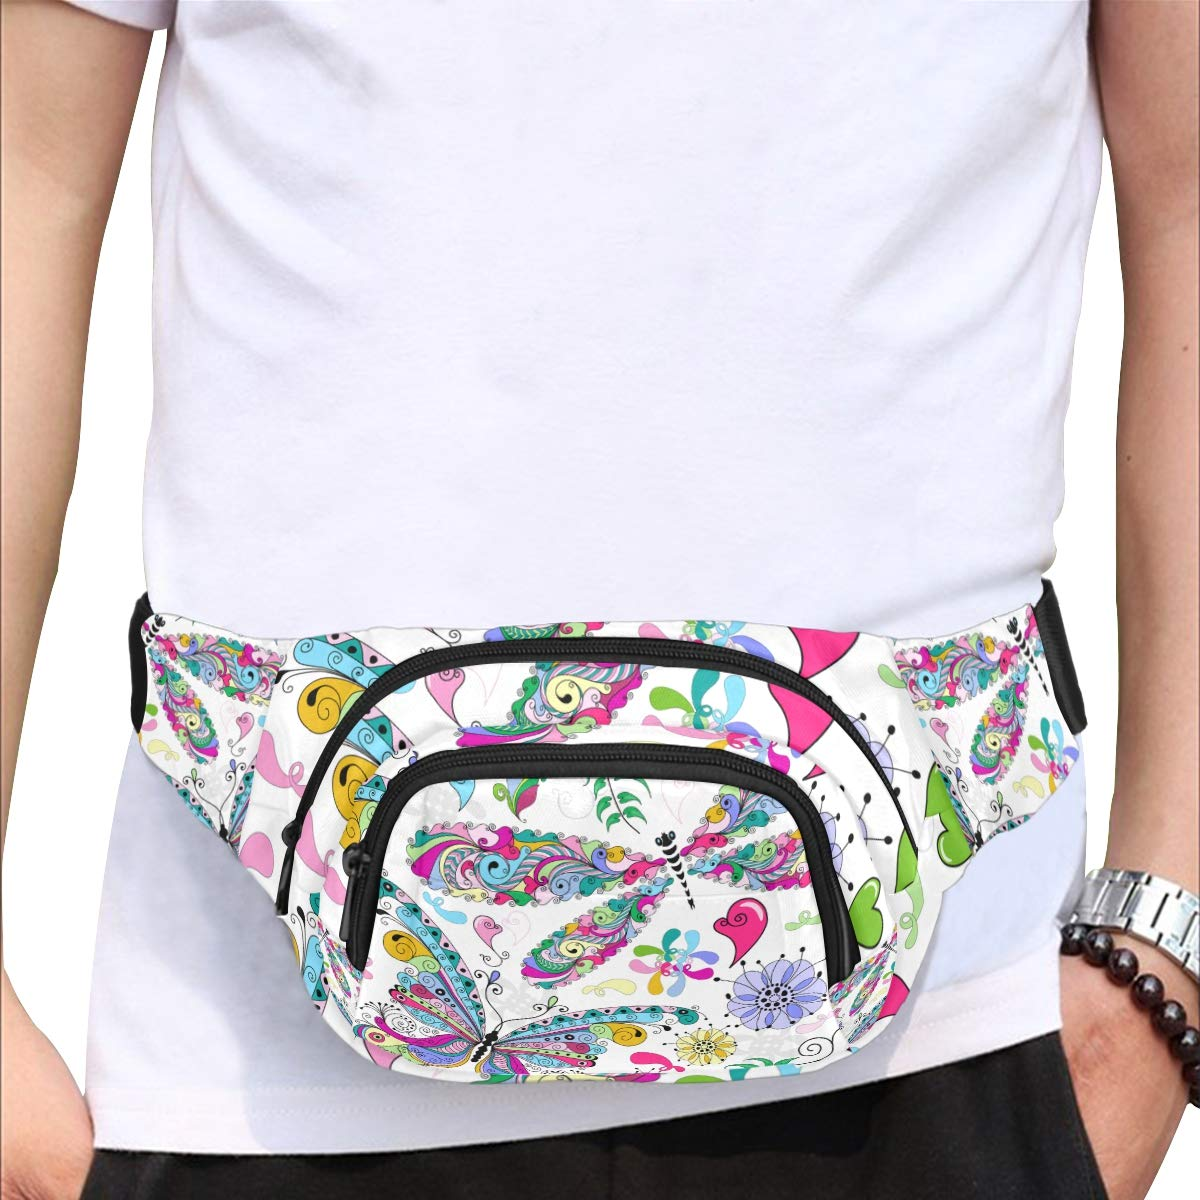 Colorful Butterflies And Flowers Fenny Packs Waist Bags Adjustable Belt Waterproof Nylon Travel Running Sport Vacation Party For Men Women Boys Girls Kids